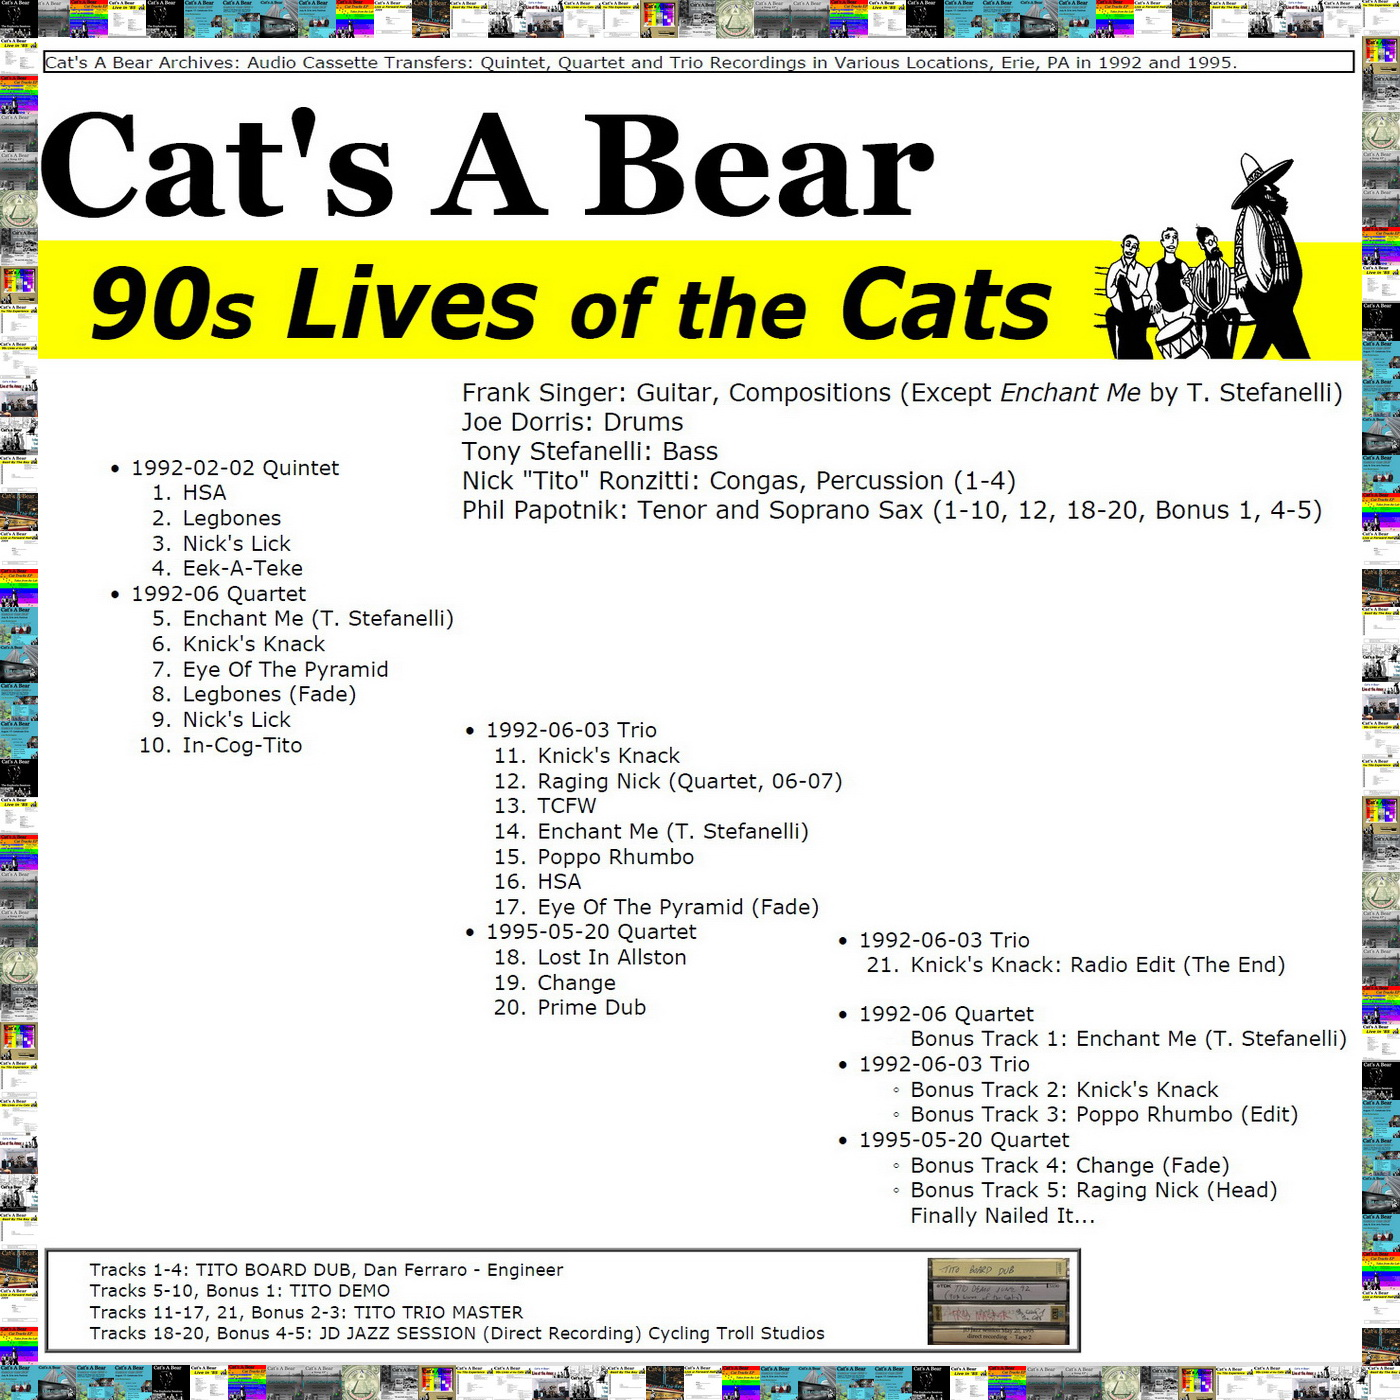 90s Lives of the Cats